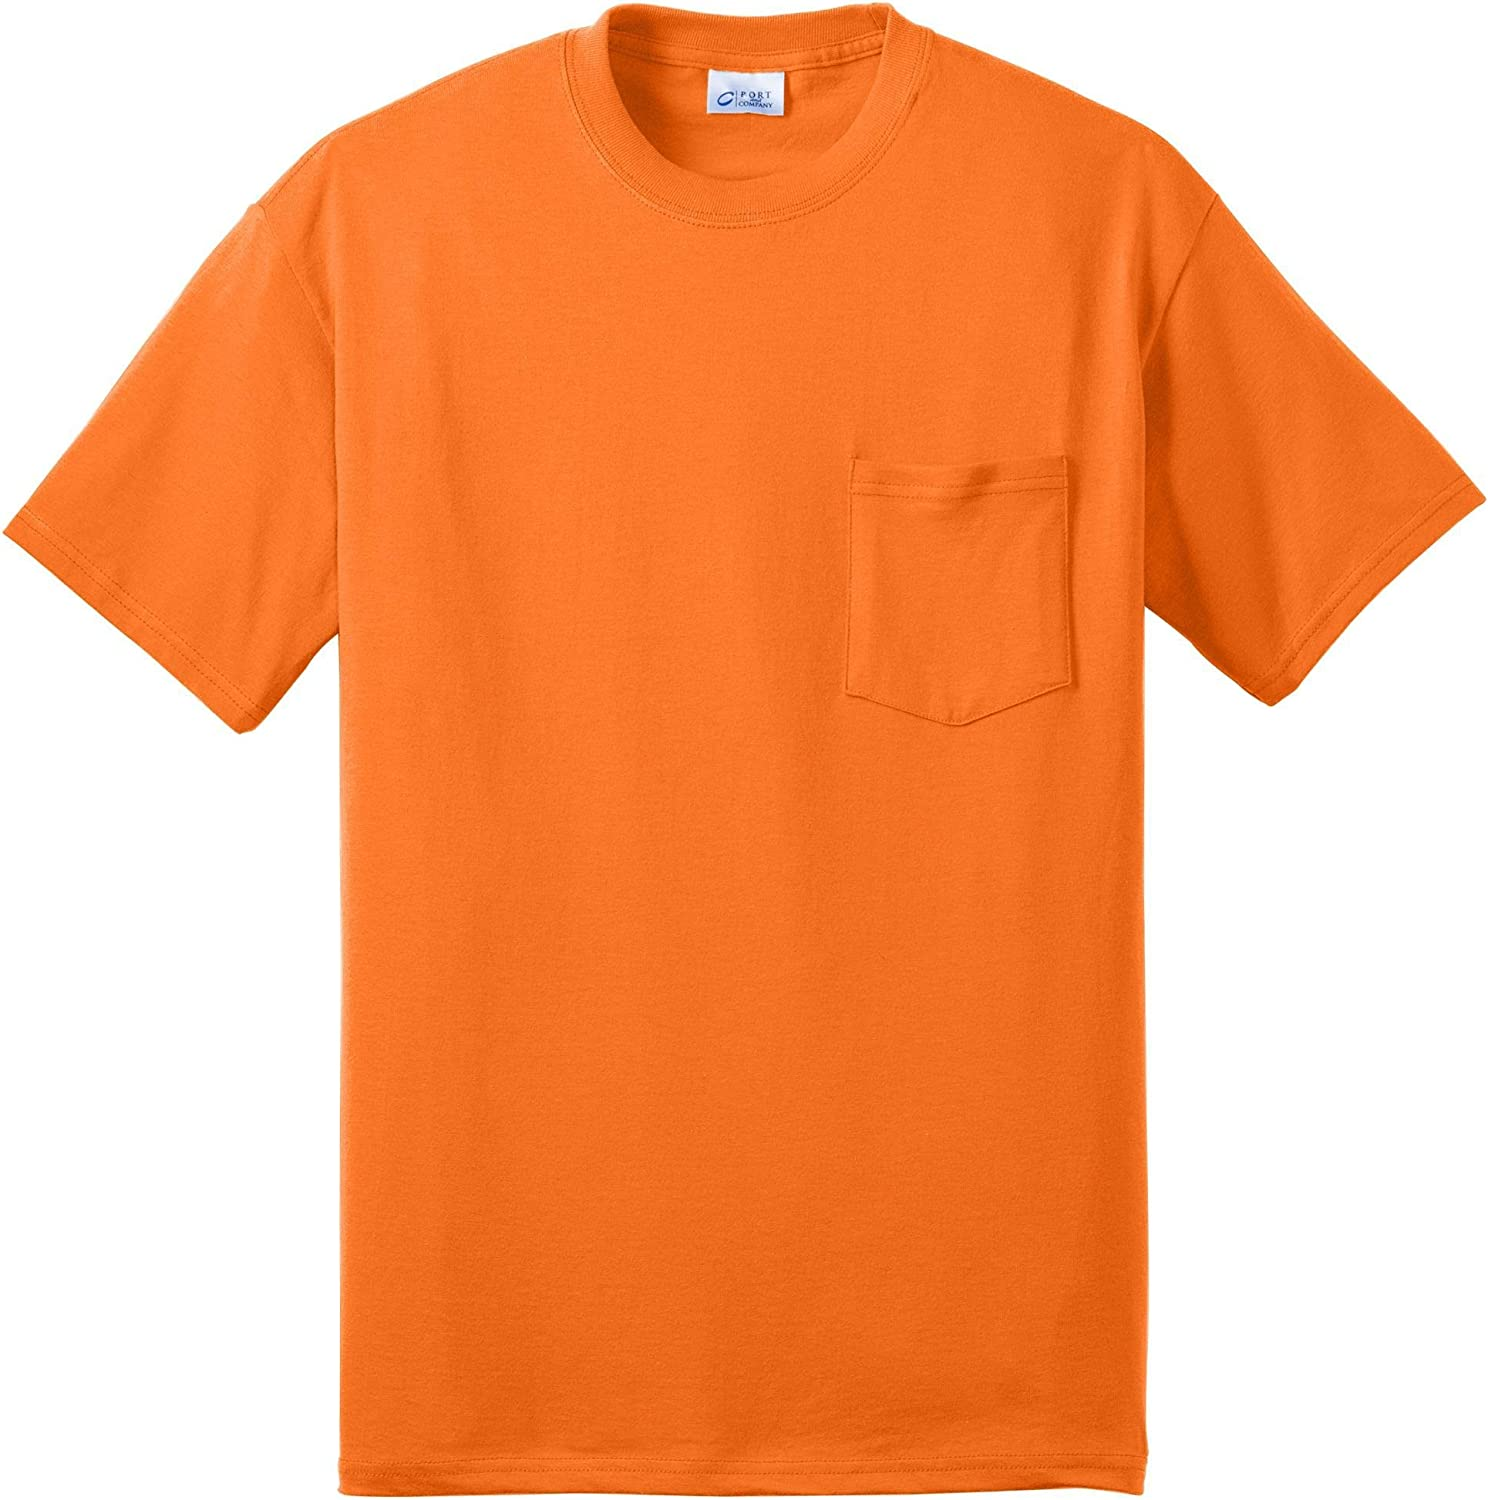 Port & Company Tall 50/50 Cotton/Poly T-Shirt with Pocket>4XLT Safety Orange